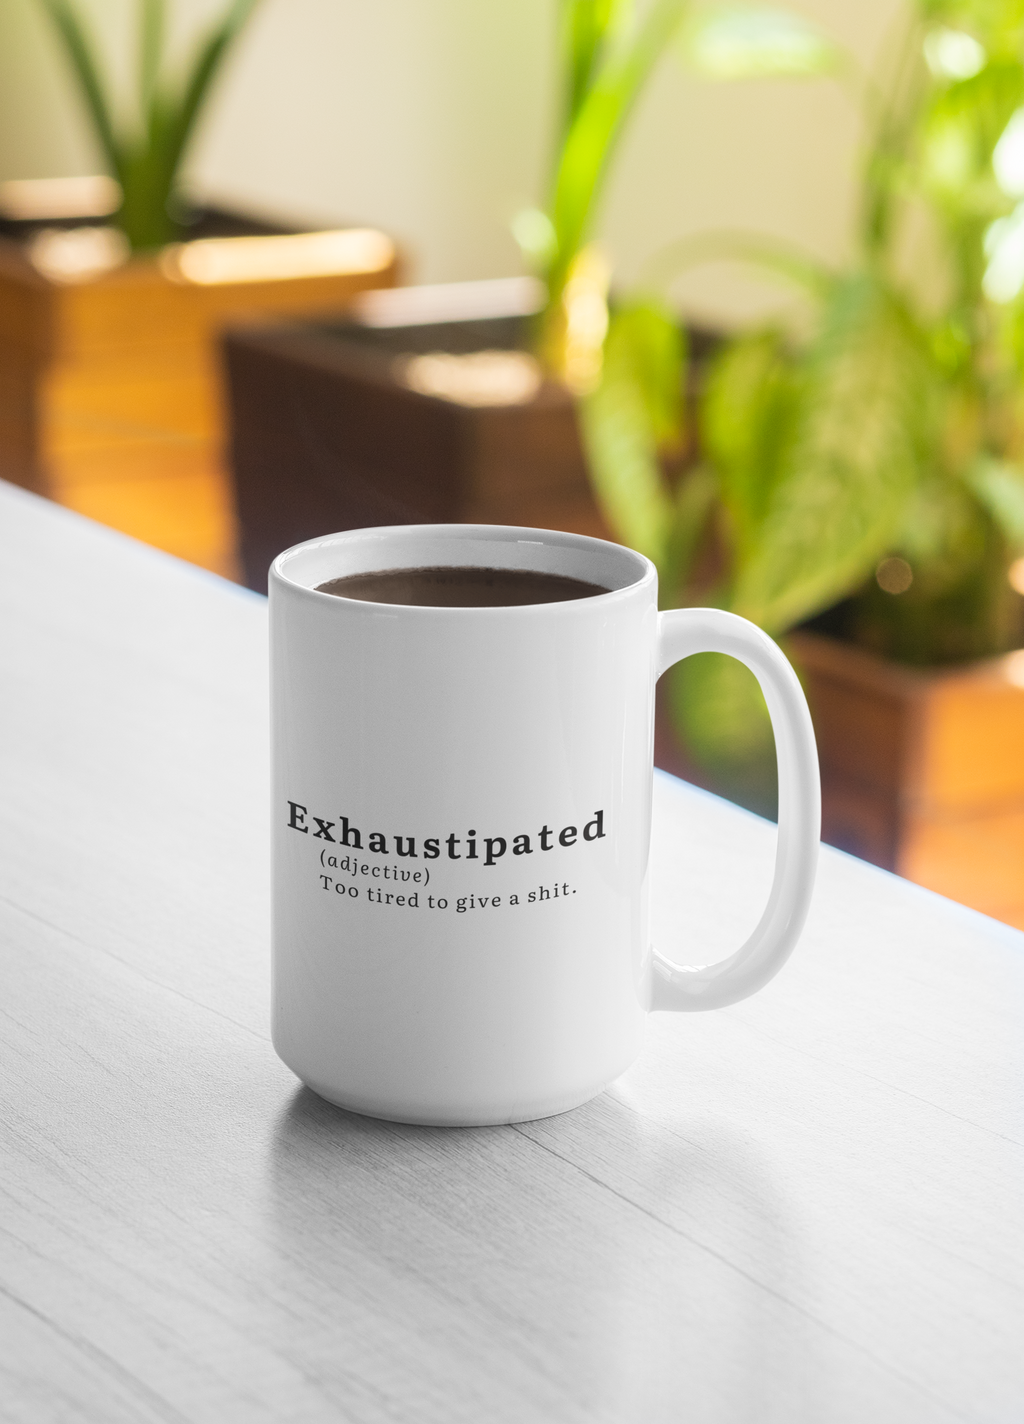 Exhaustipated Coffee Mug